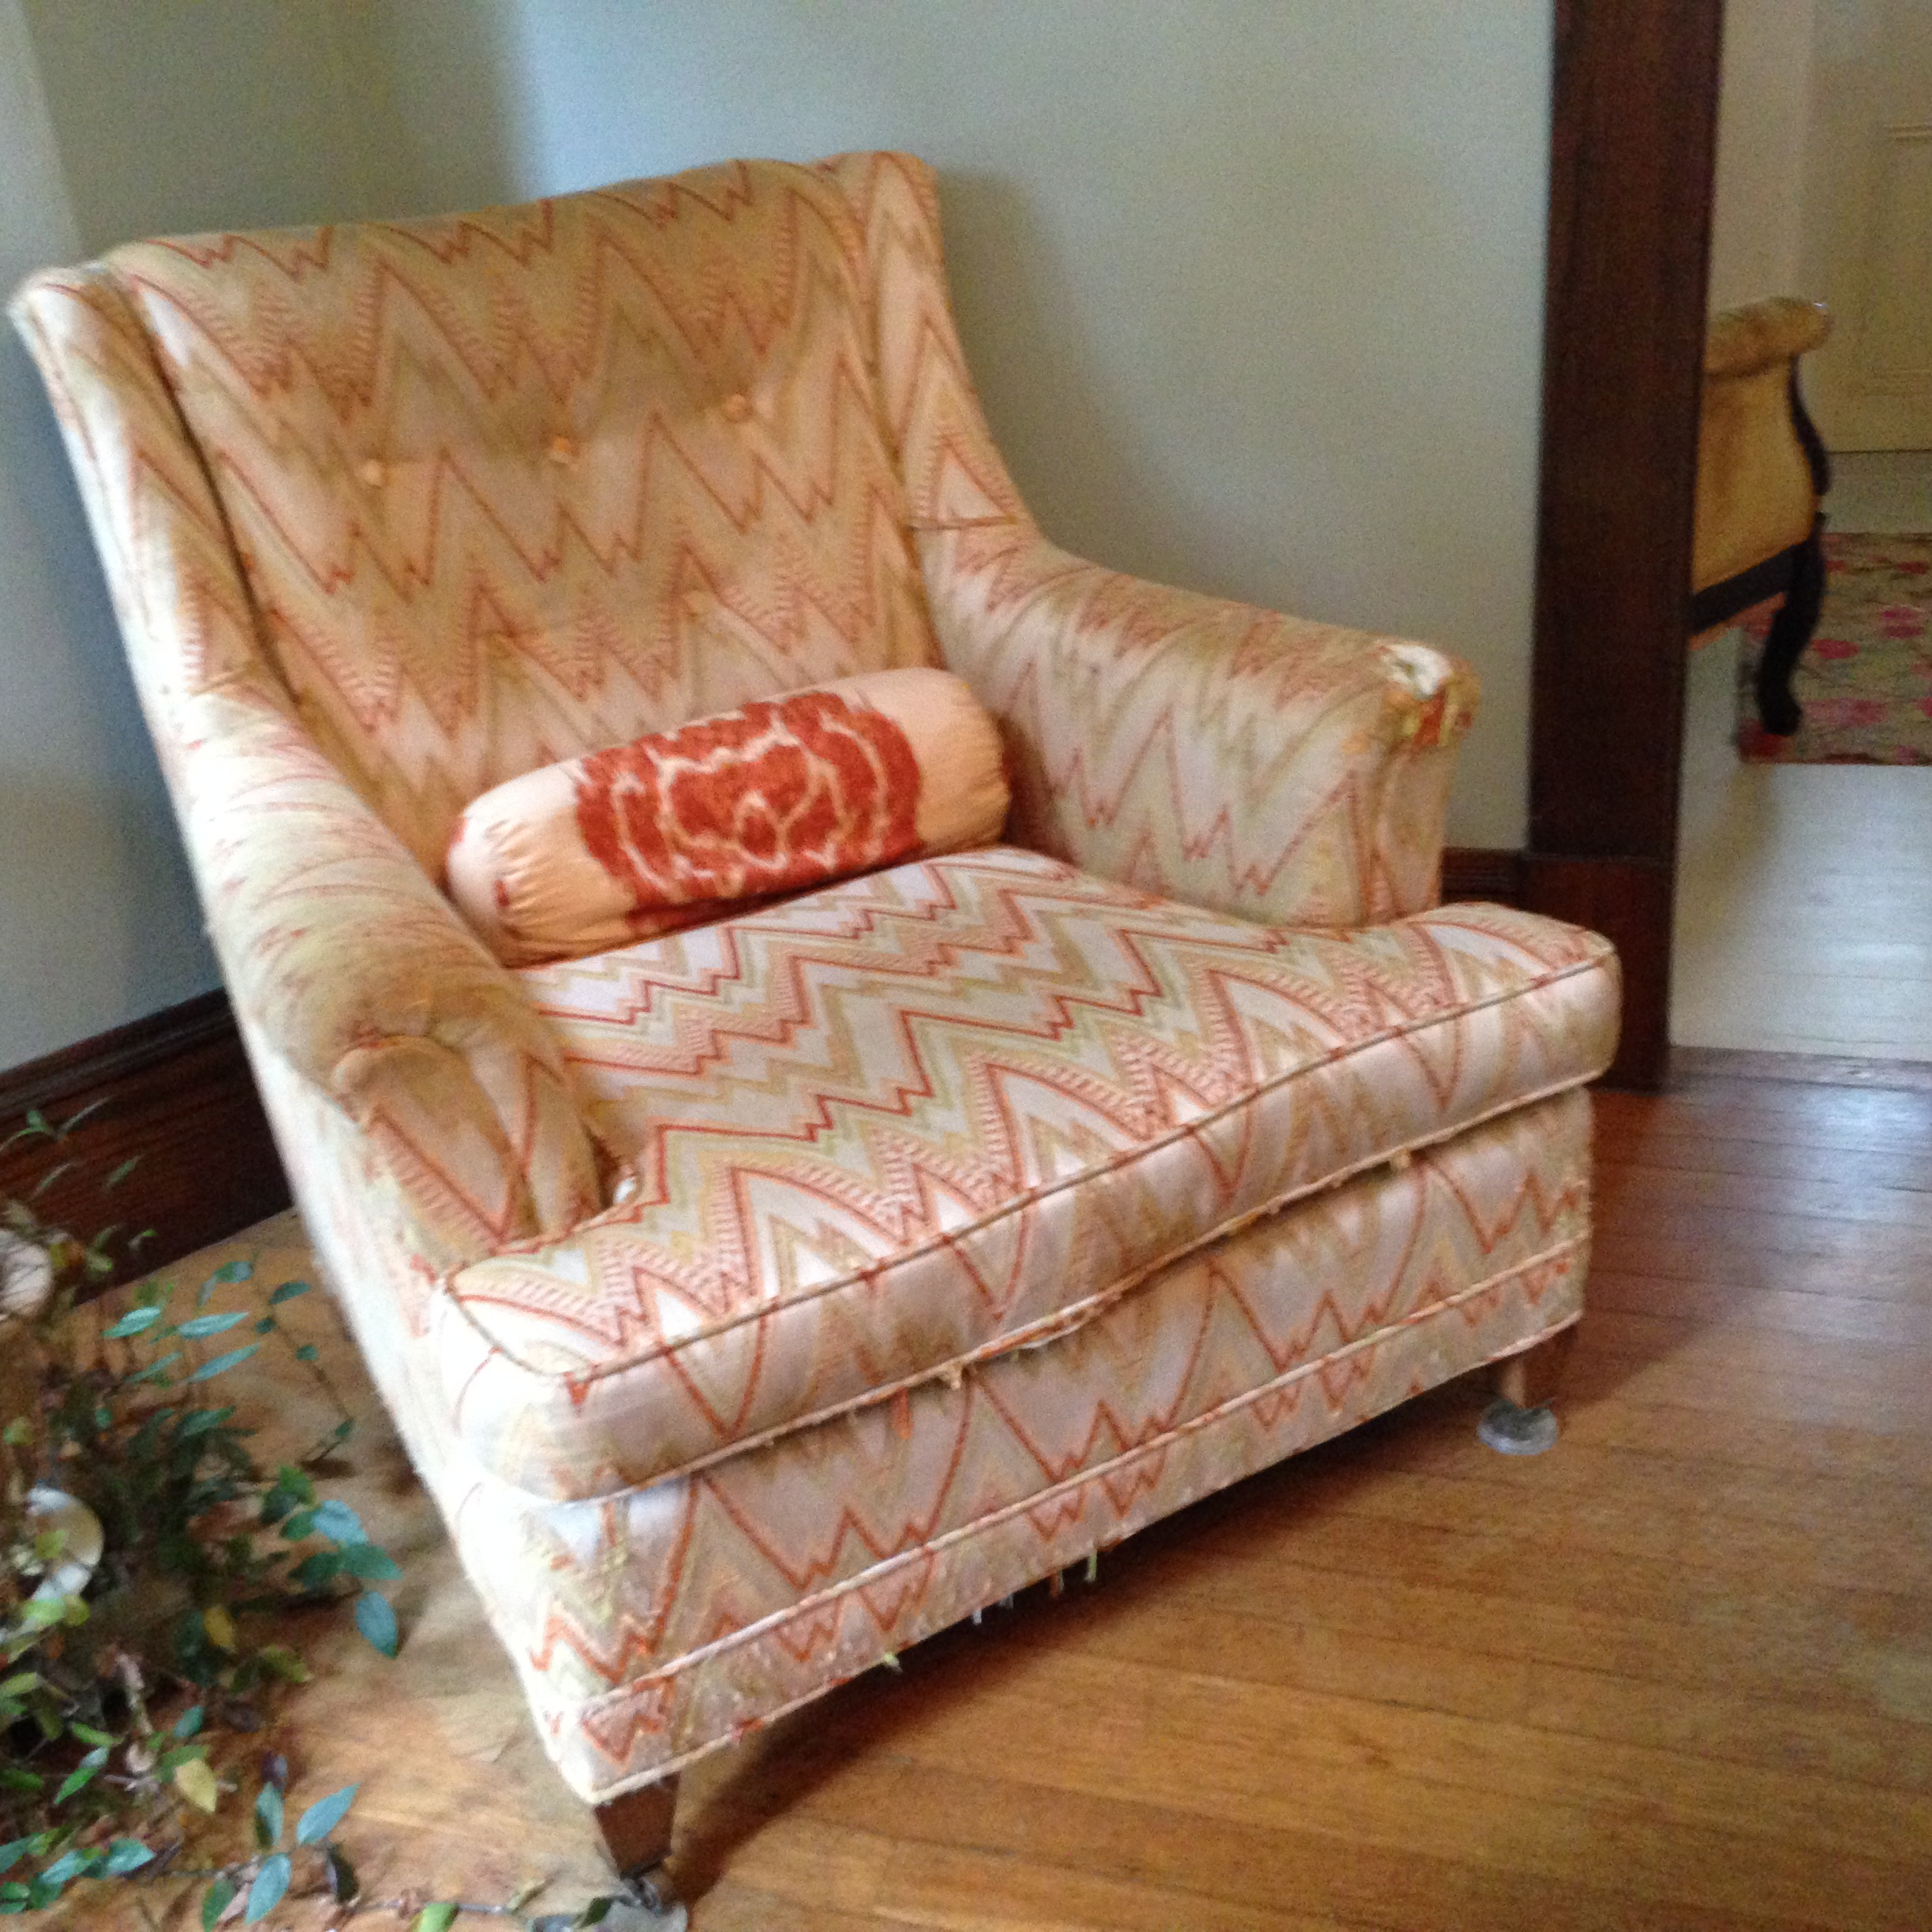 old-chair.jpg